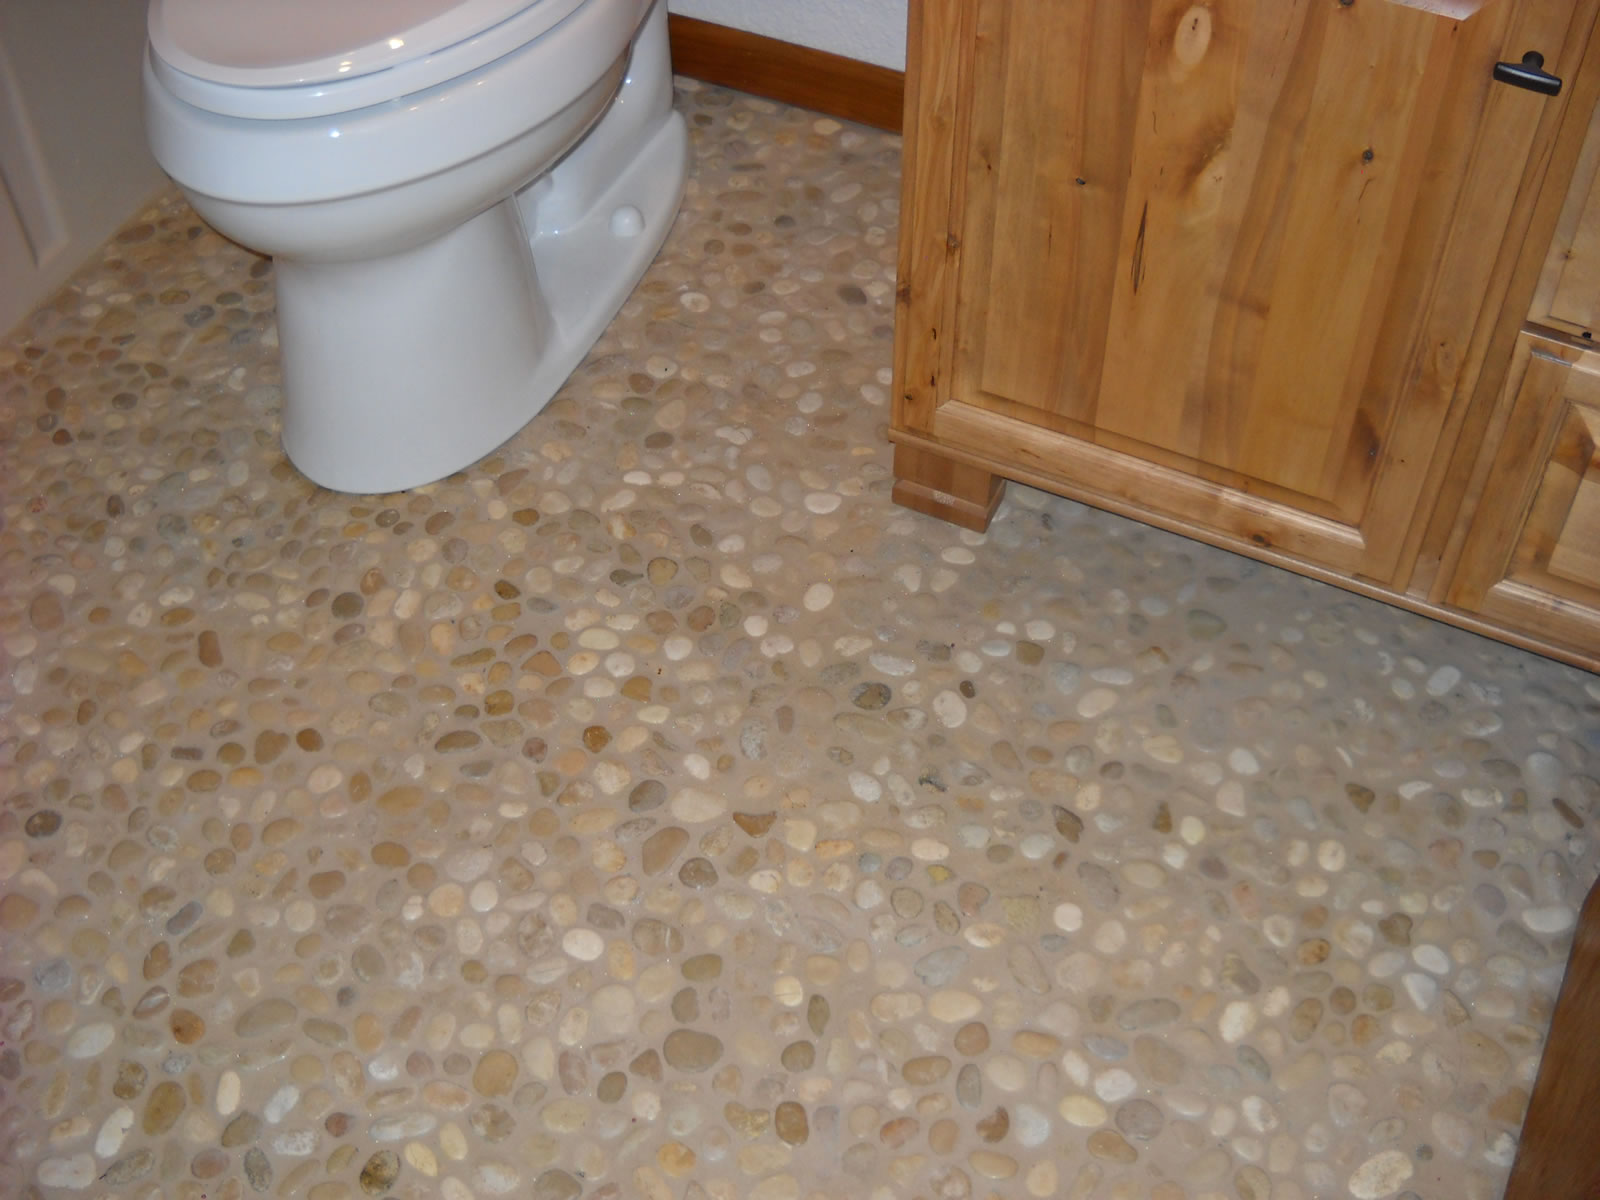 Pebble Tile Flooring Master Shower With Seat And Shelf